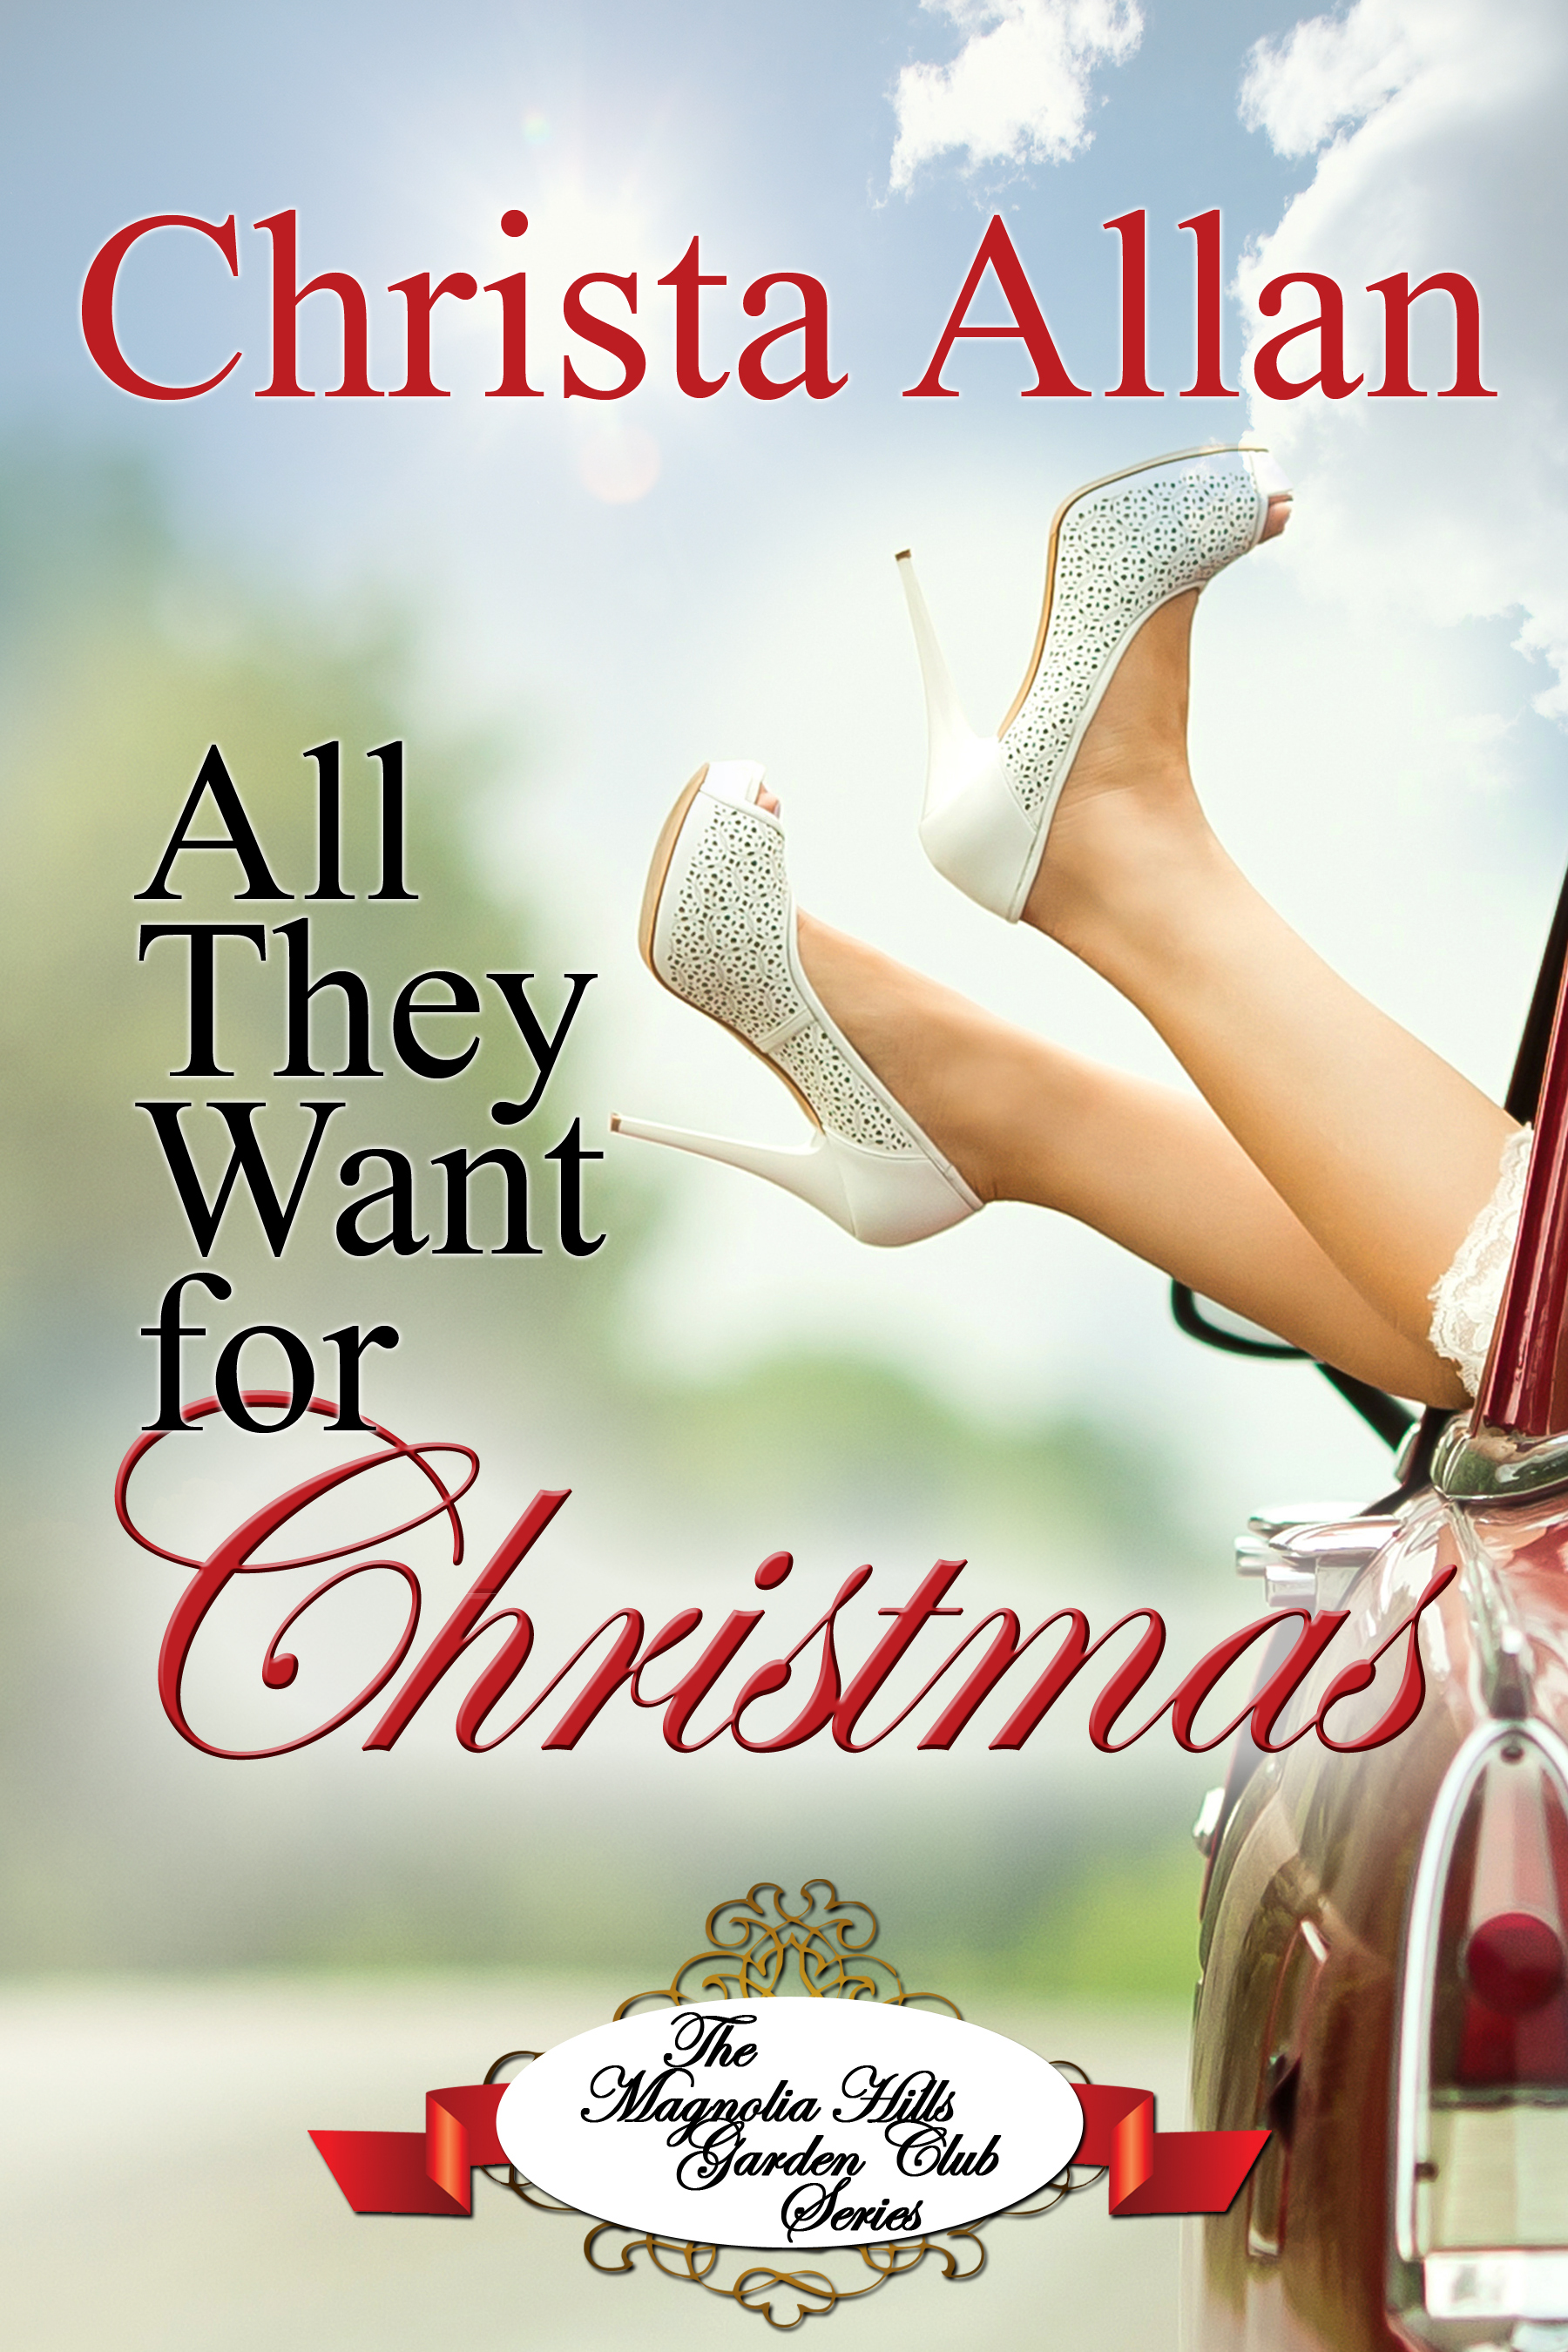 All They Want for Christmas: A Novella Christa Allan